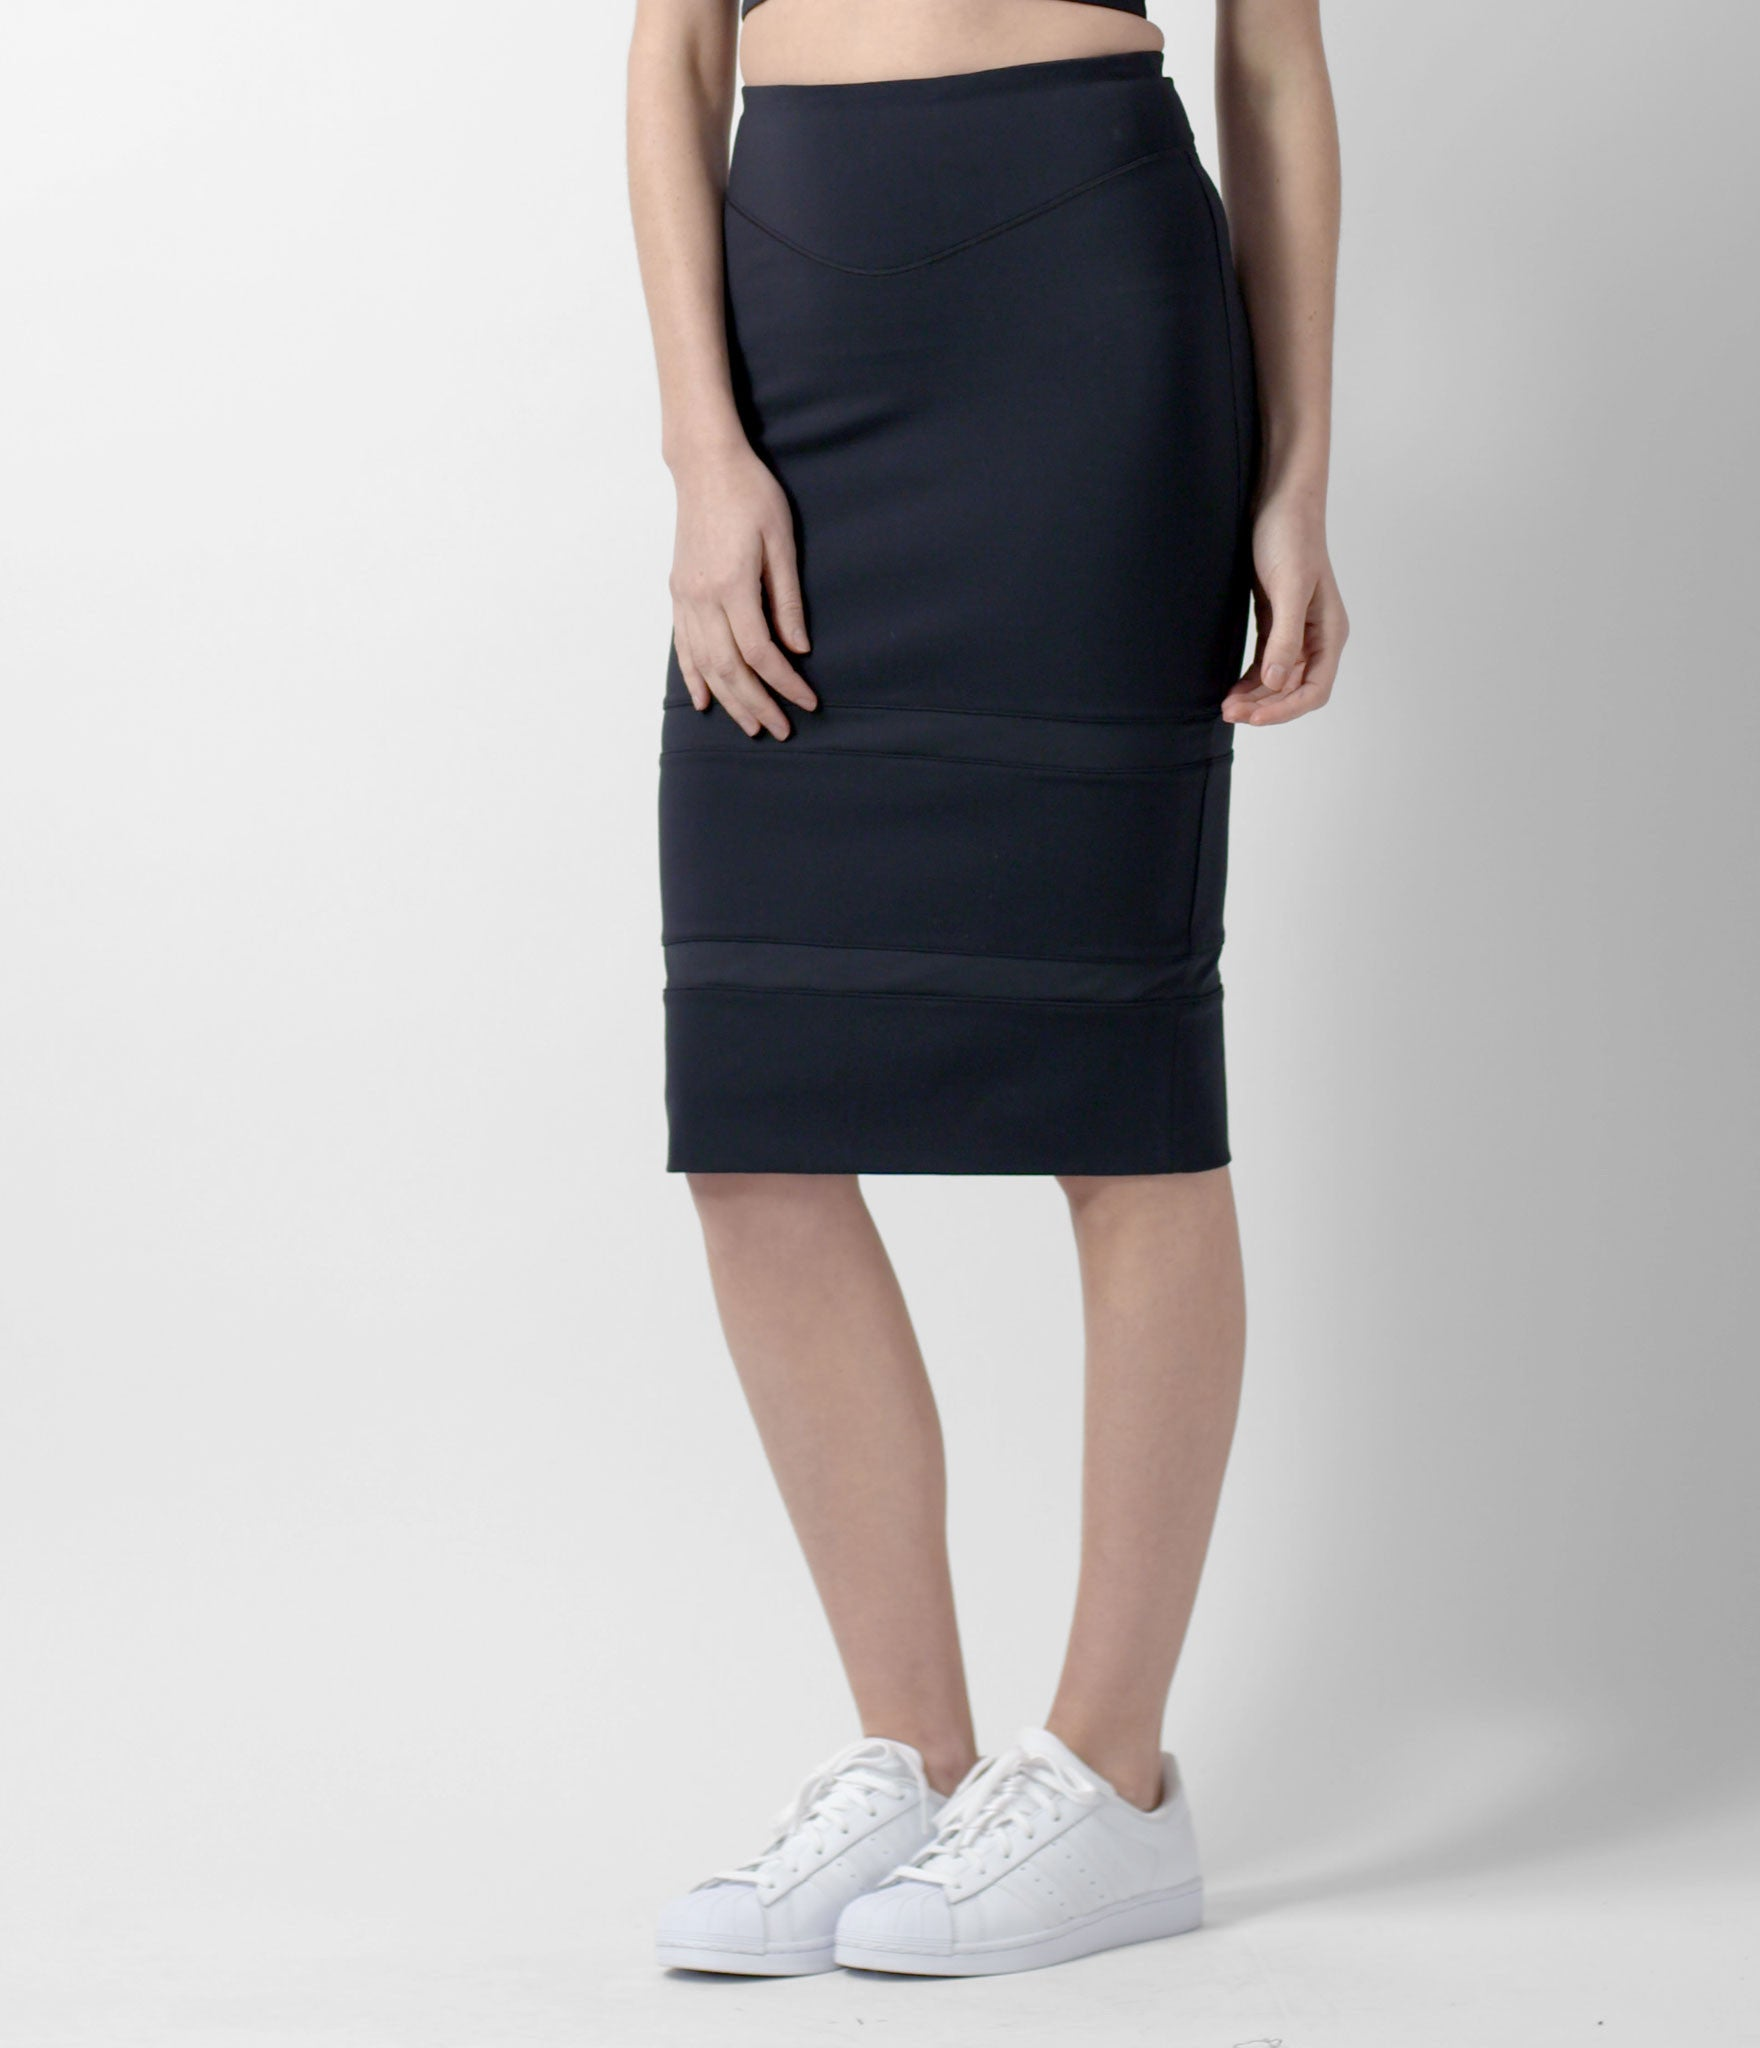 Short Pencil Skirt, color-black